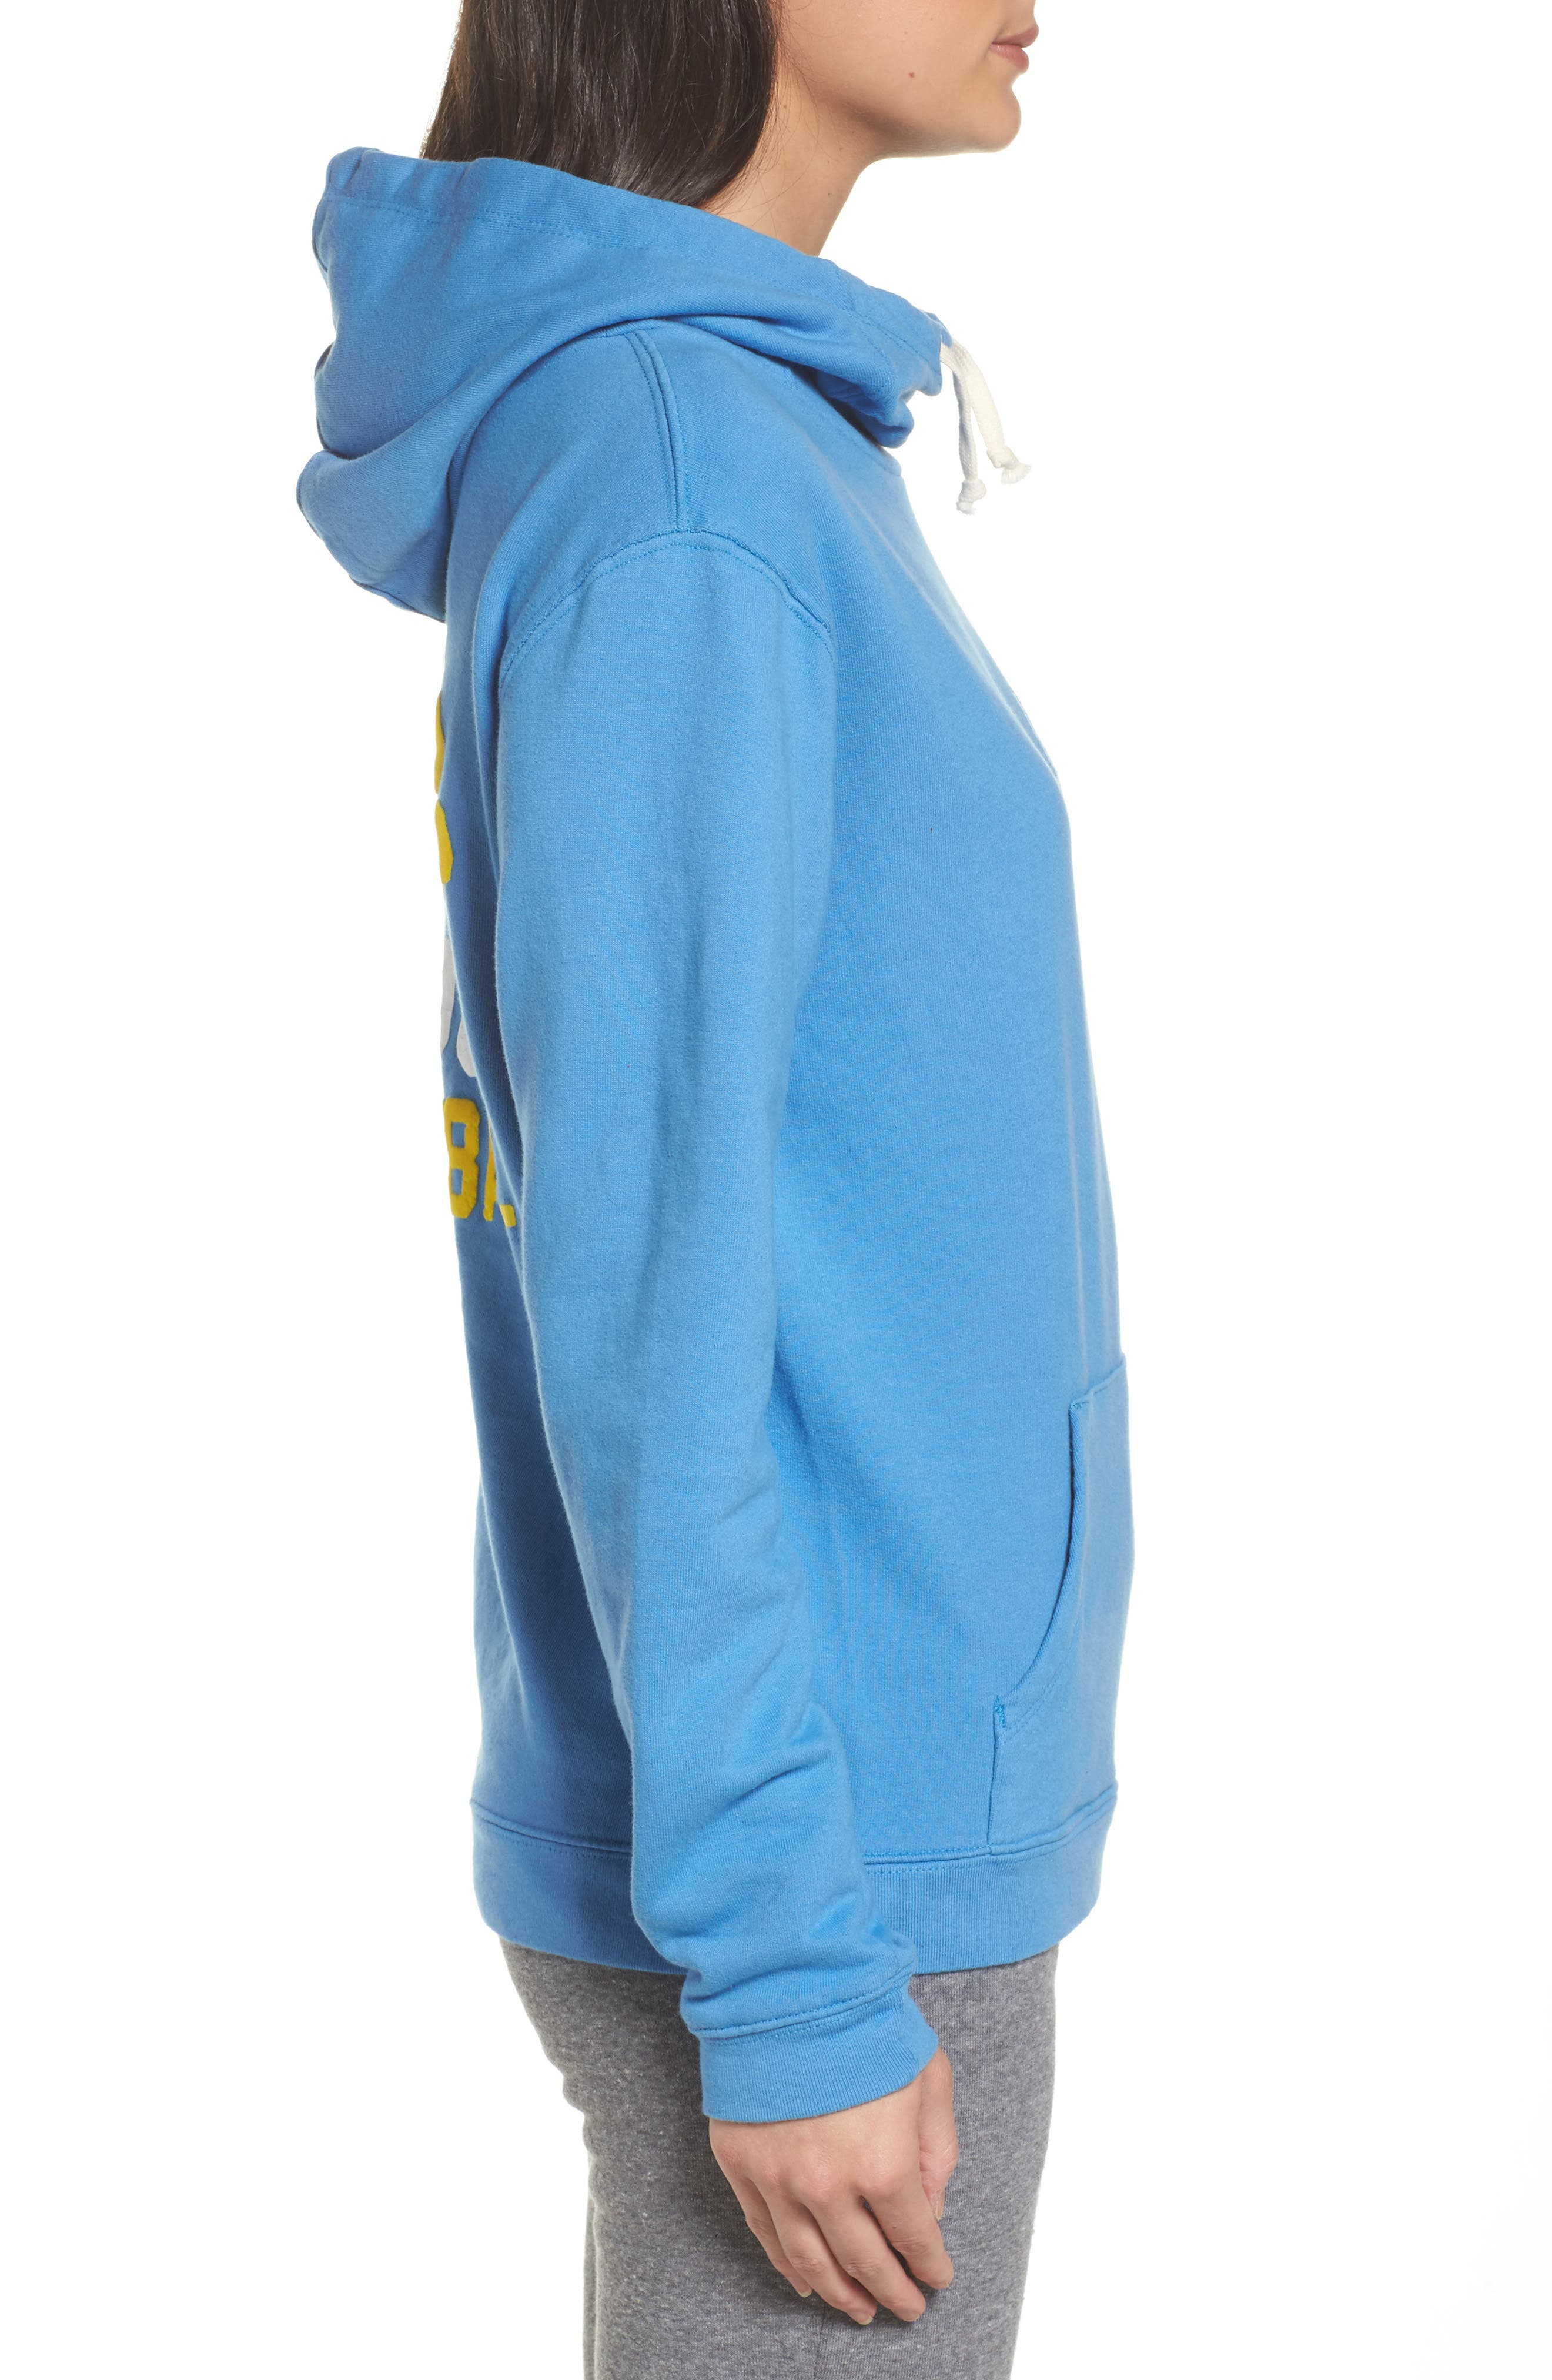 NFL Los Angeles Chargers Sunday Hoodie,                             Alternate thumbnail 3, color,                             422